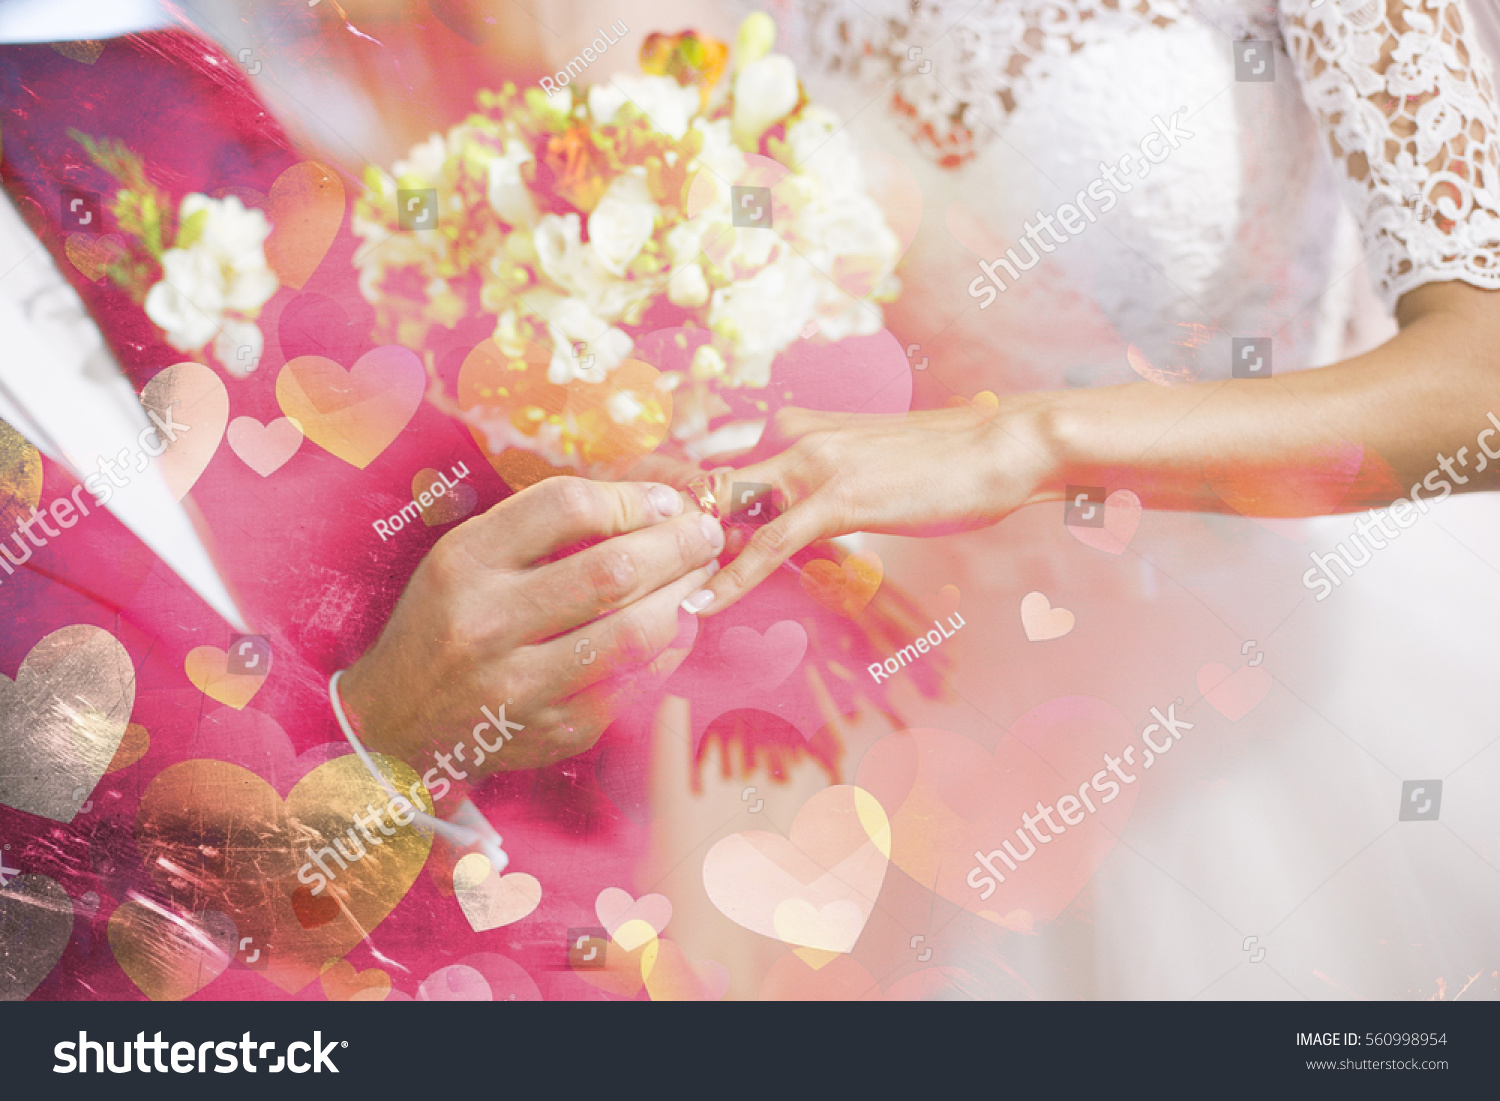 Valentine Background Groom Puts Wedding Ring Stock Photo & Image ...